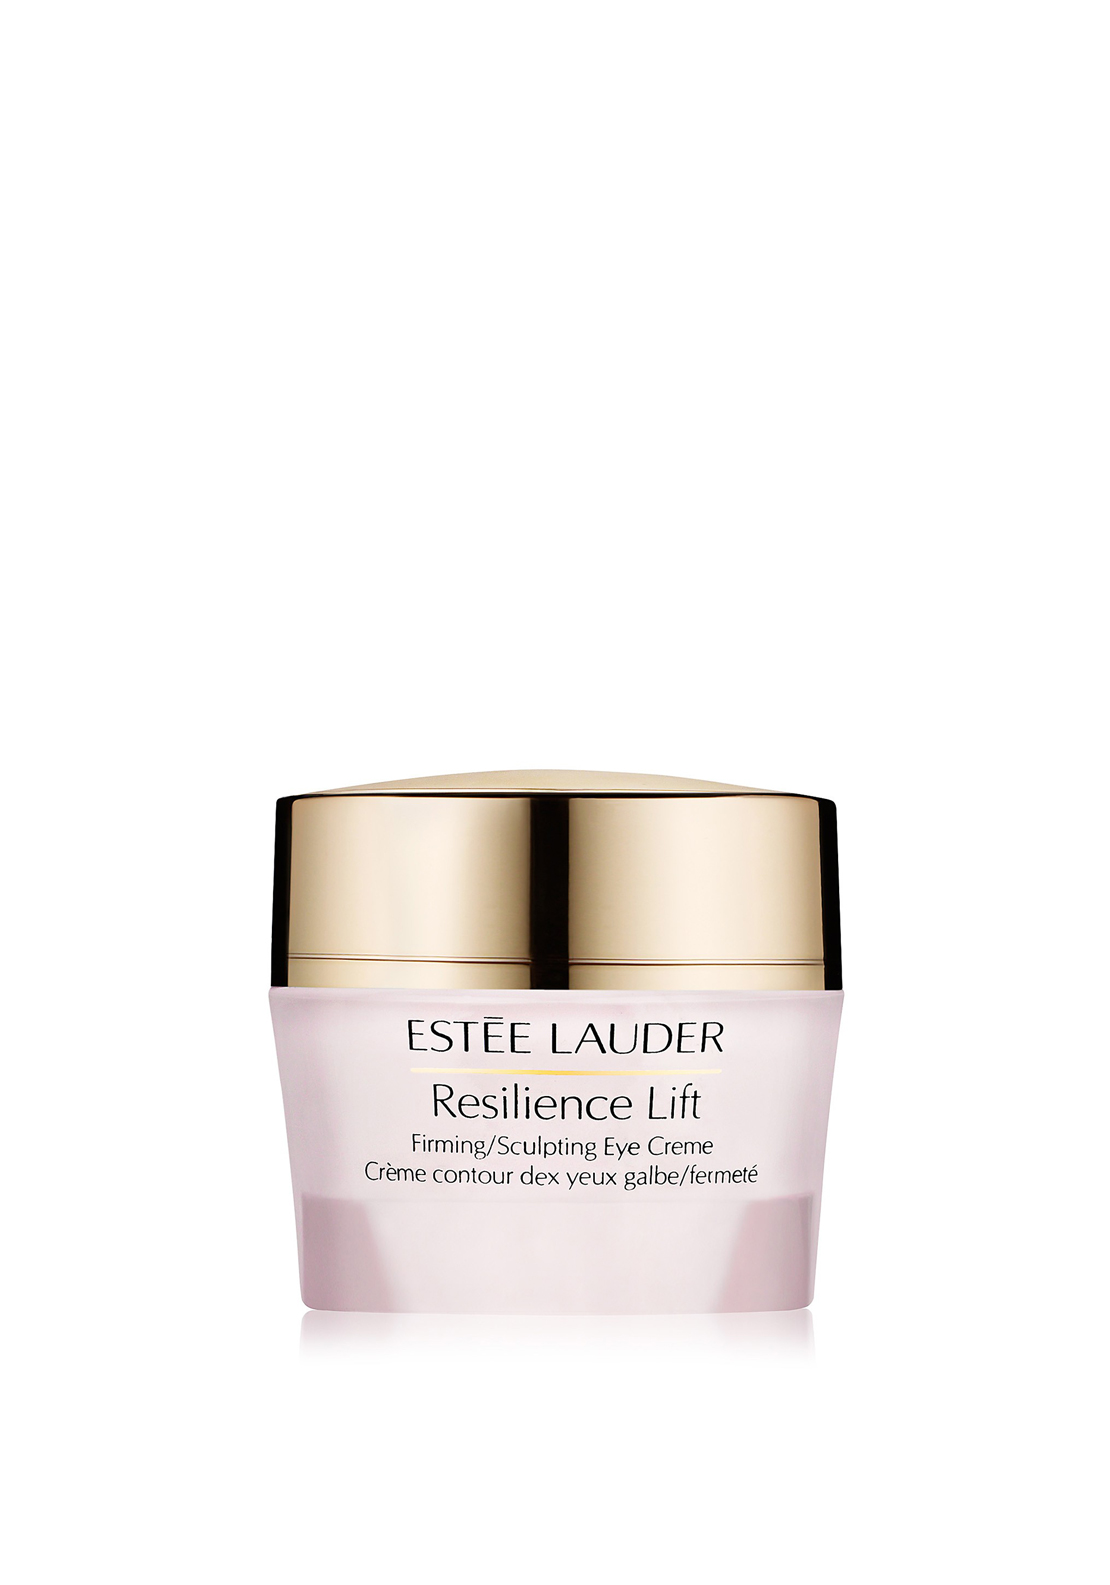 Estee Lauder Resilience Lift Eye Cream, 15ml